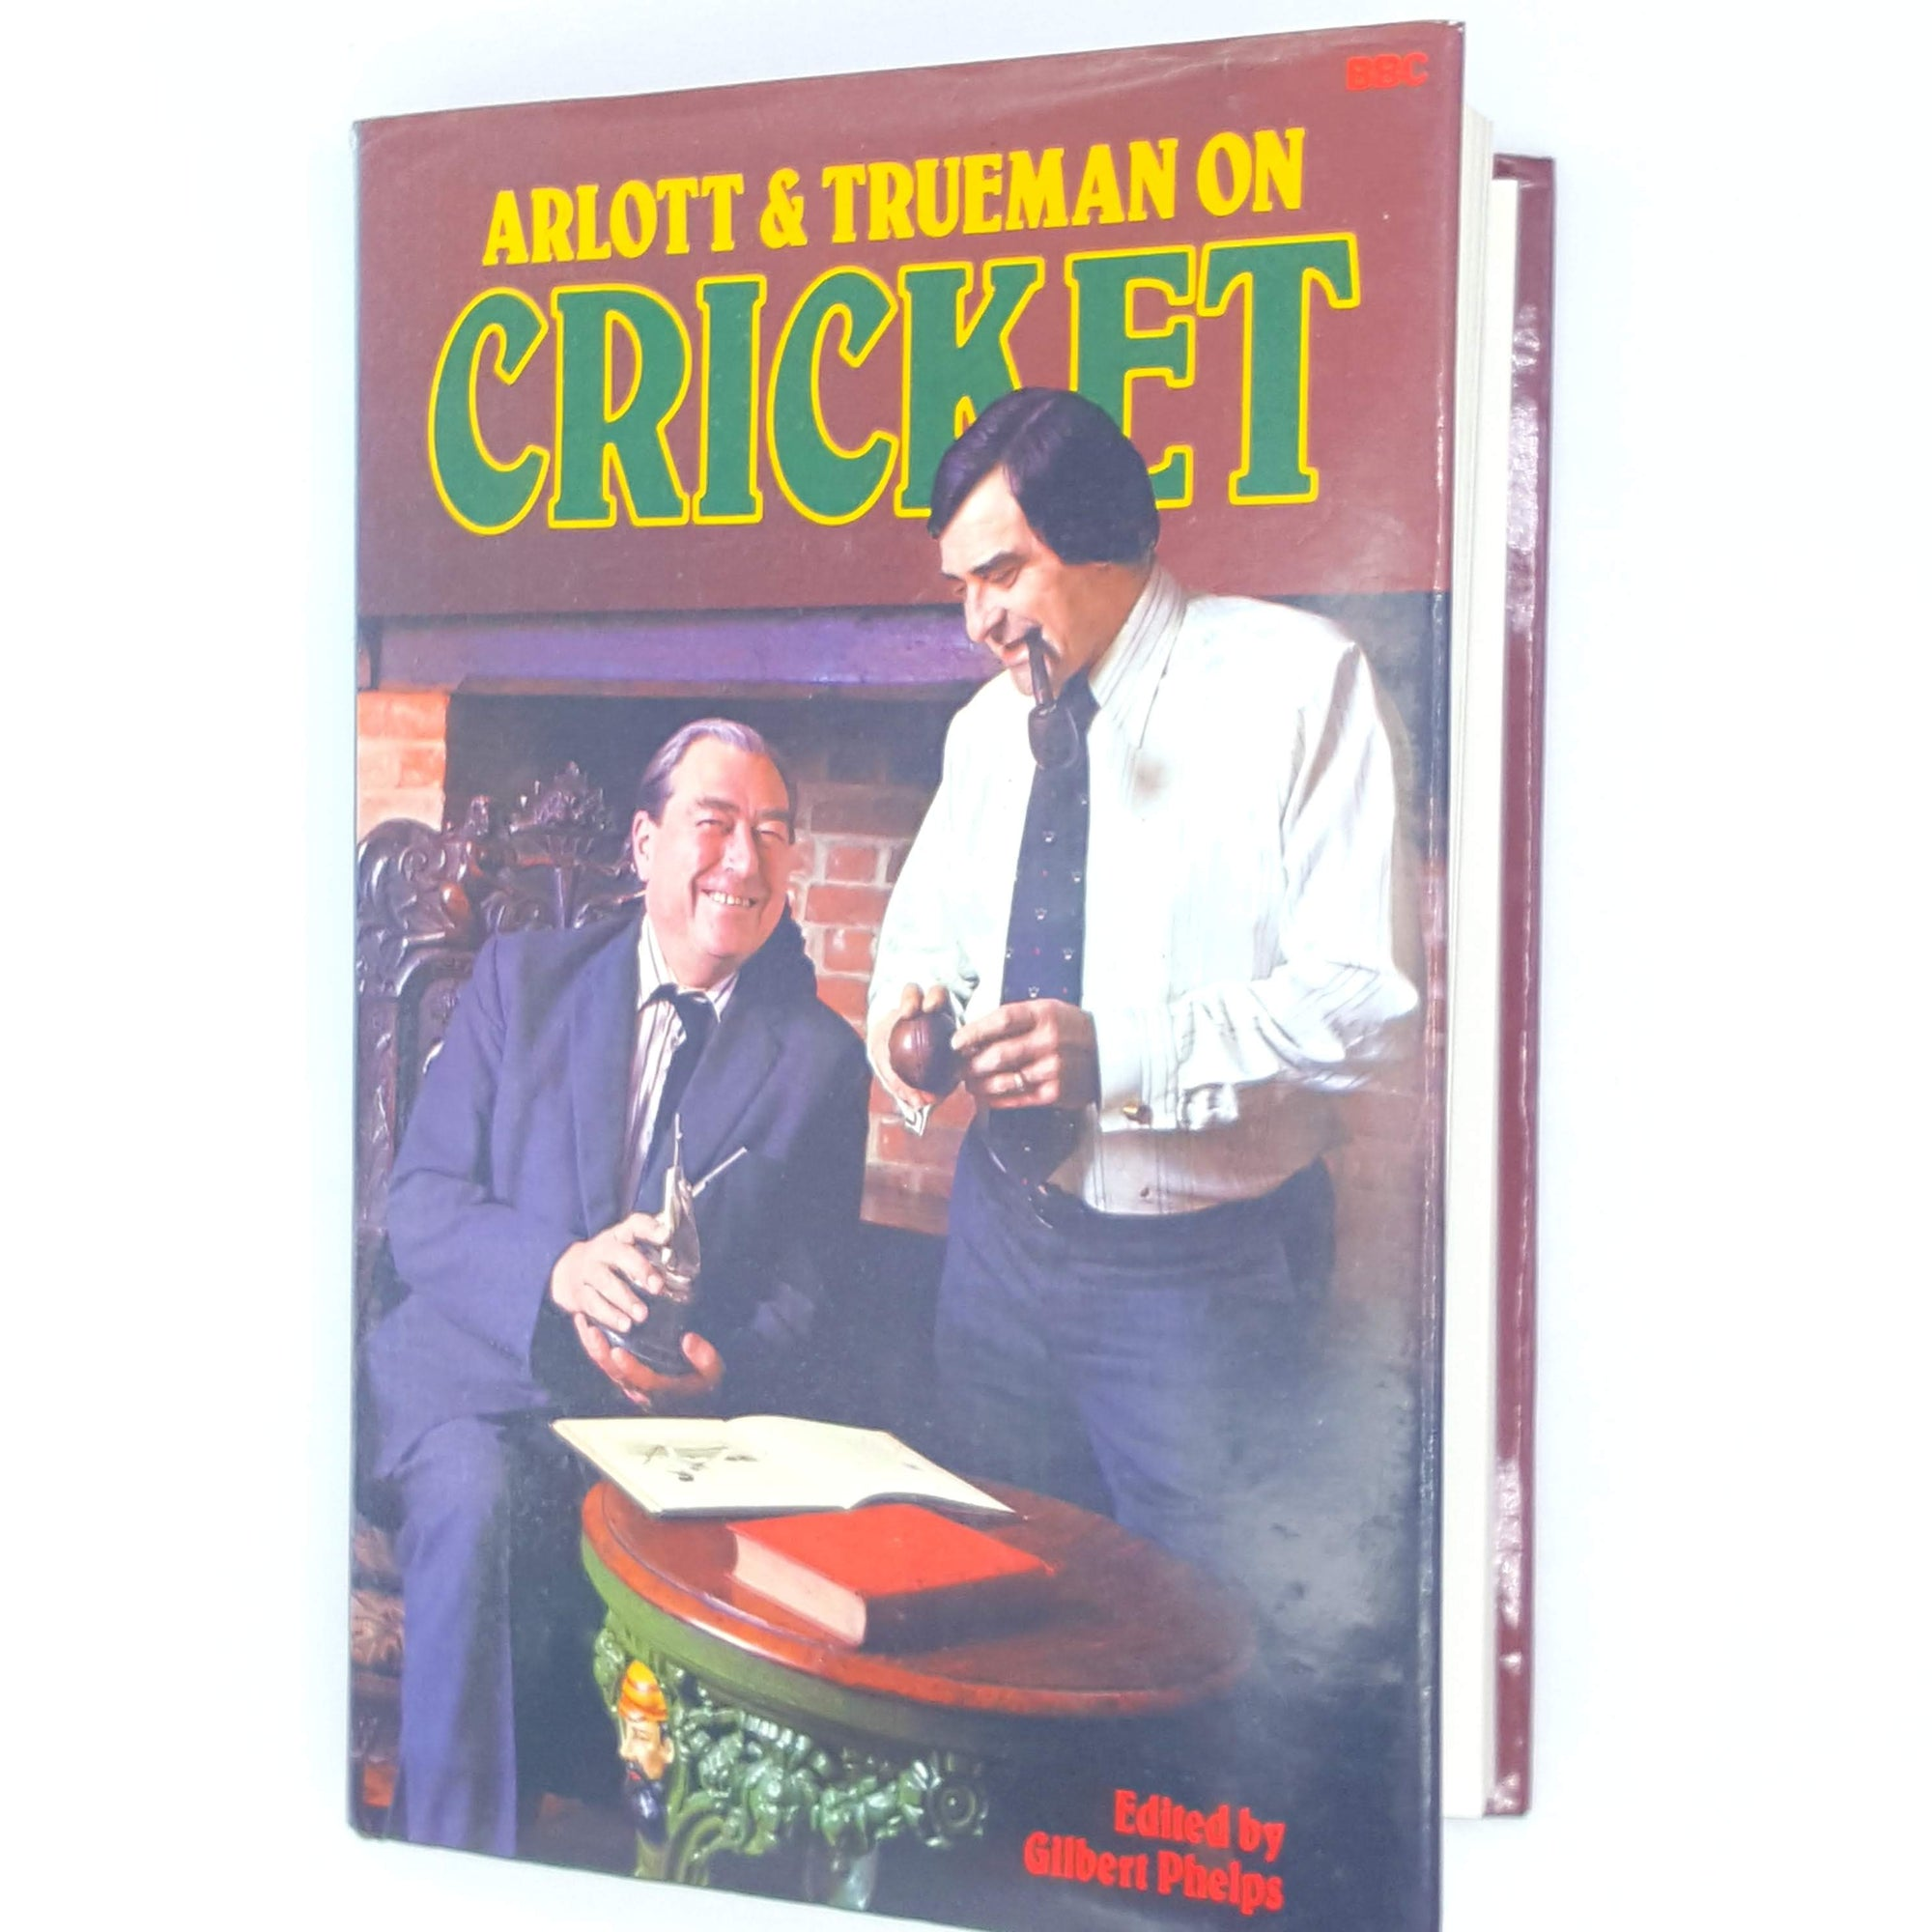 arlott-and-trueman-antique-thrift-books-england-old-cricket-english-country-house-library-BBC-vintage-classic-1977-sport-decorative-patterned-